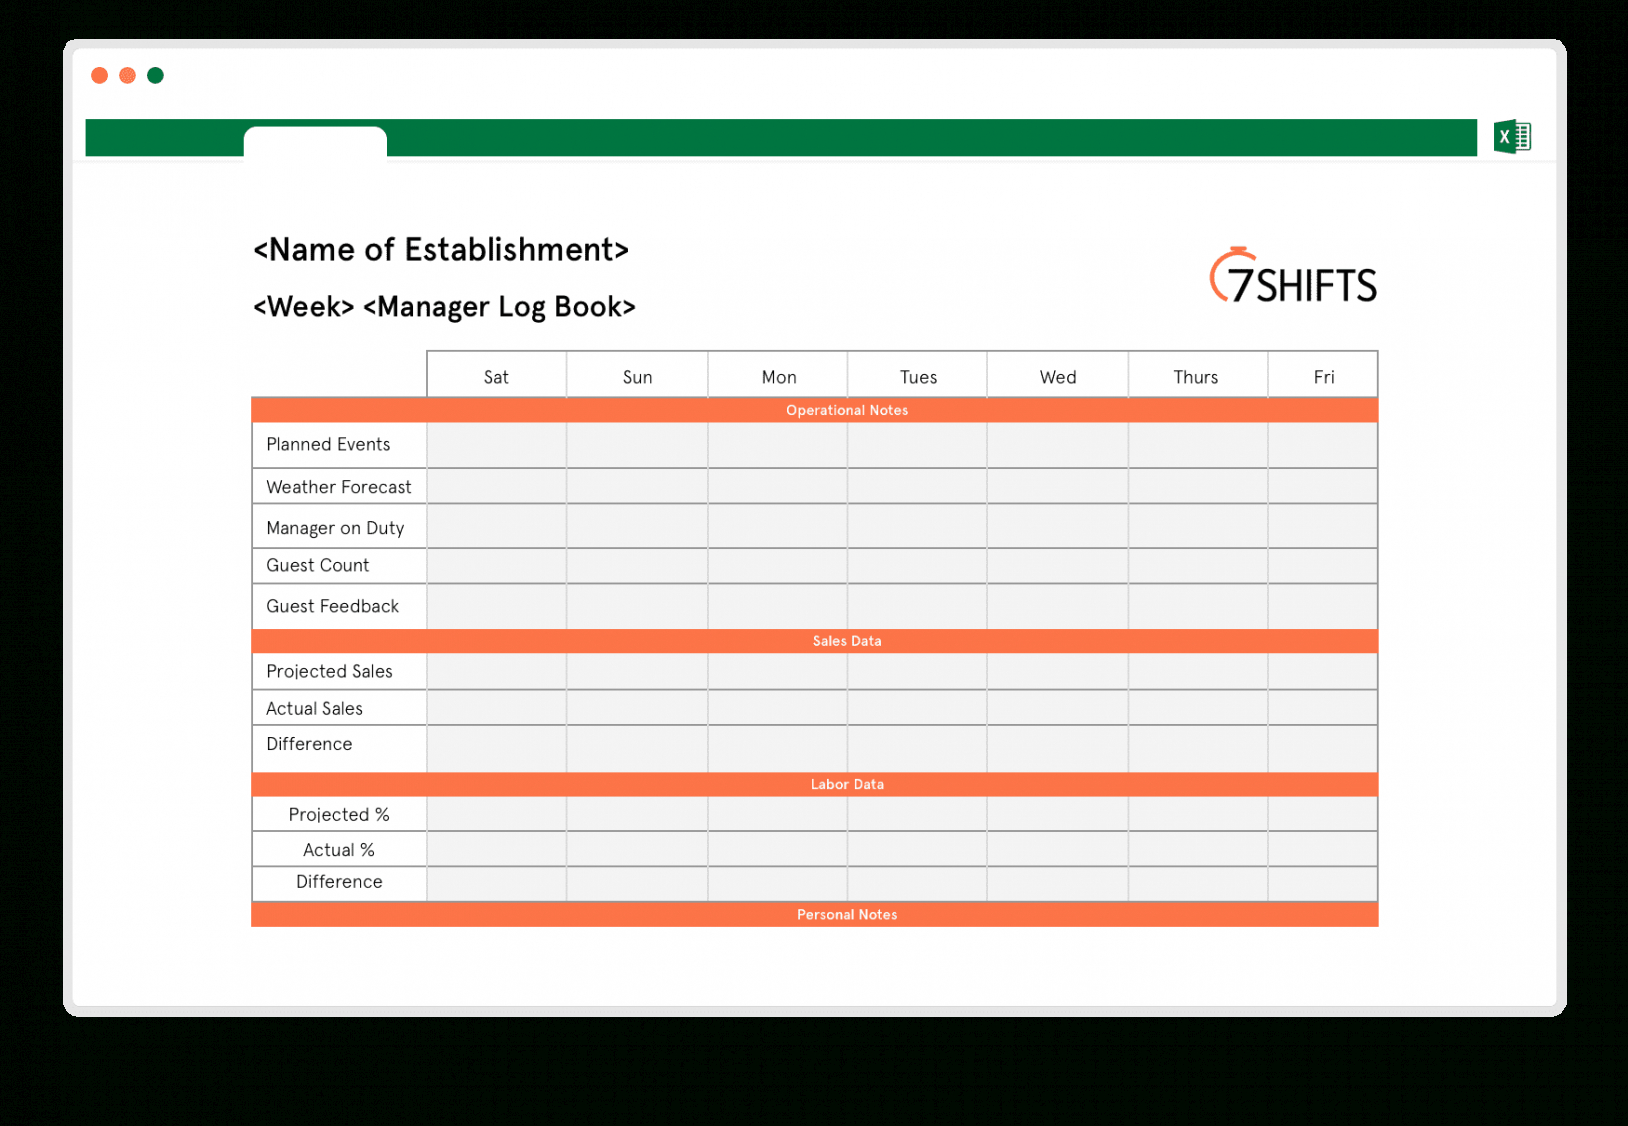 Costum Restaurant Daily Sales Report Template Excel Sample